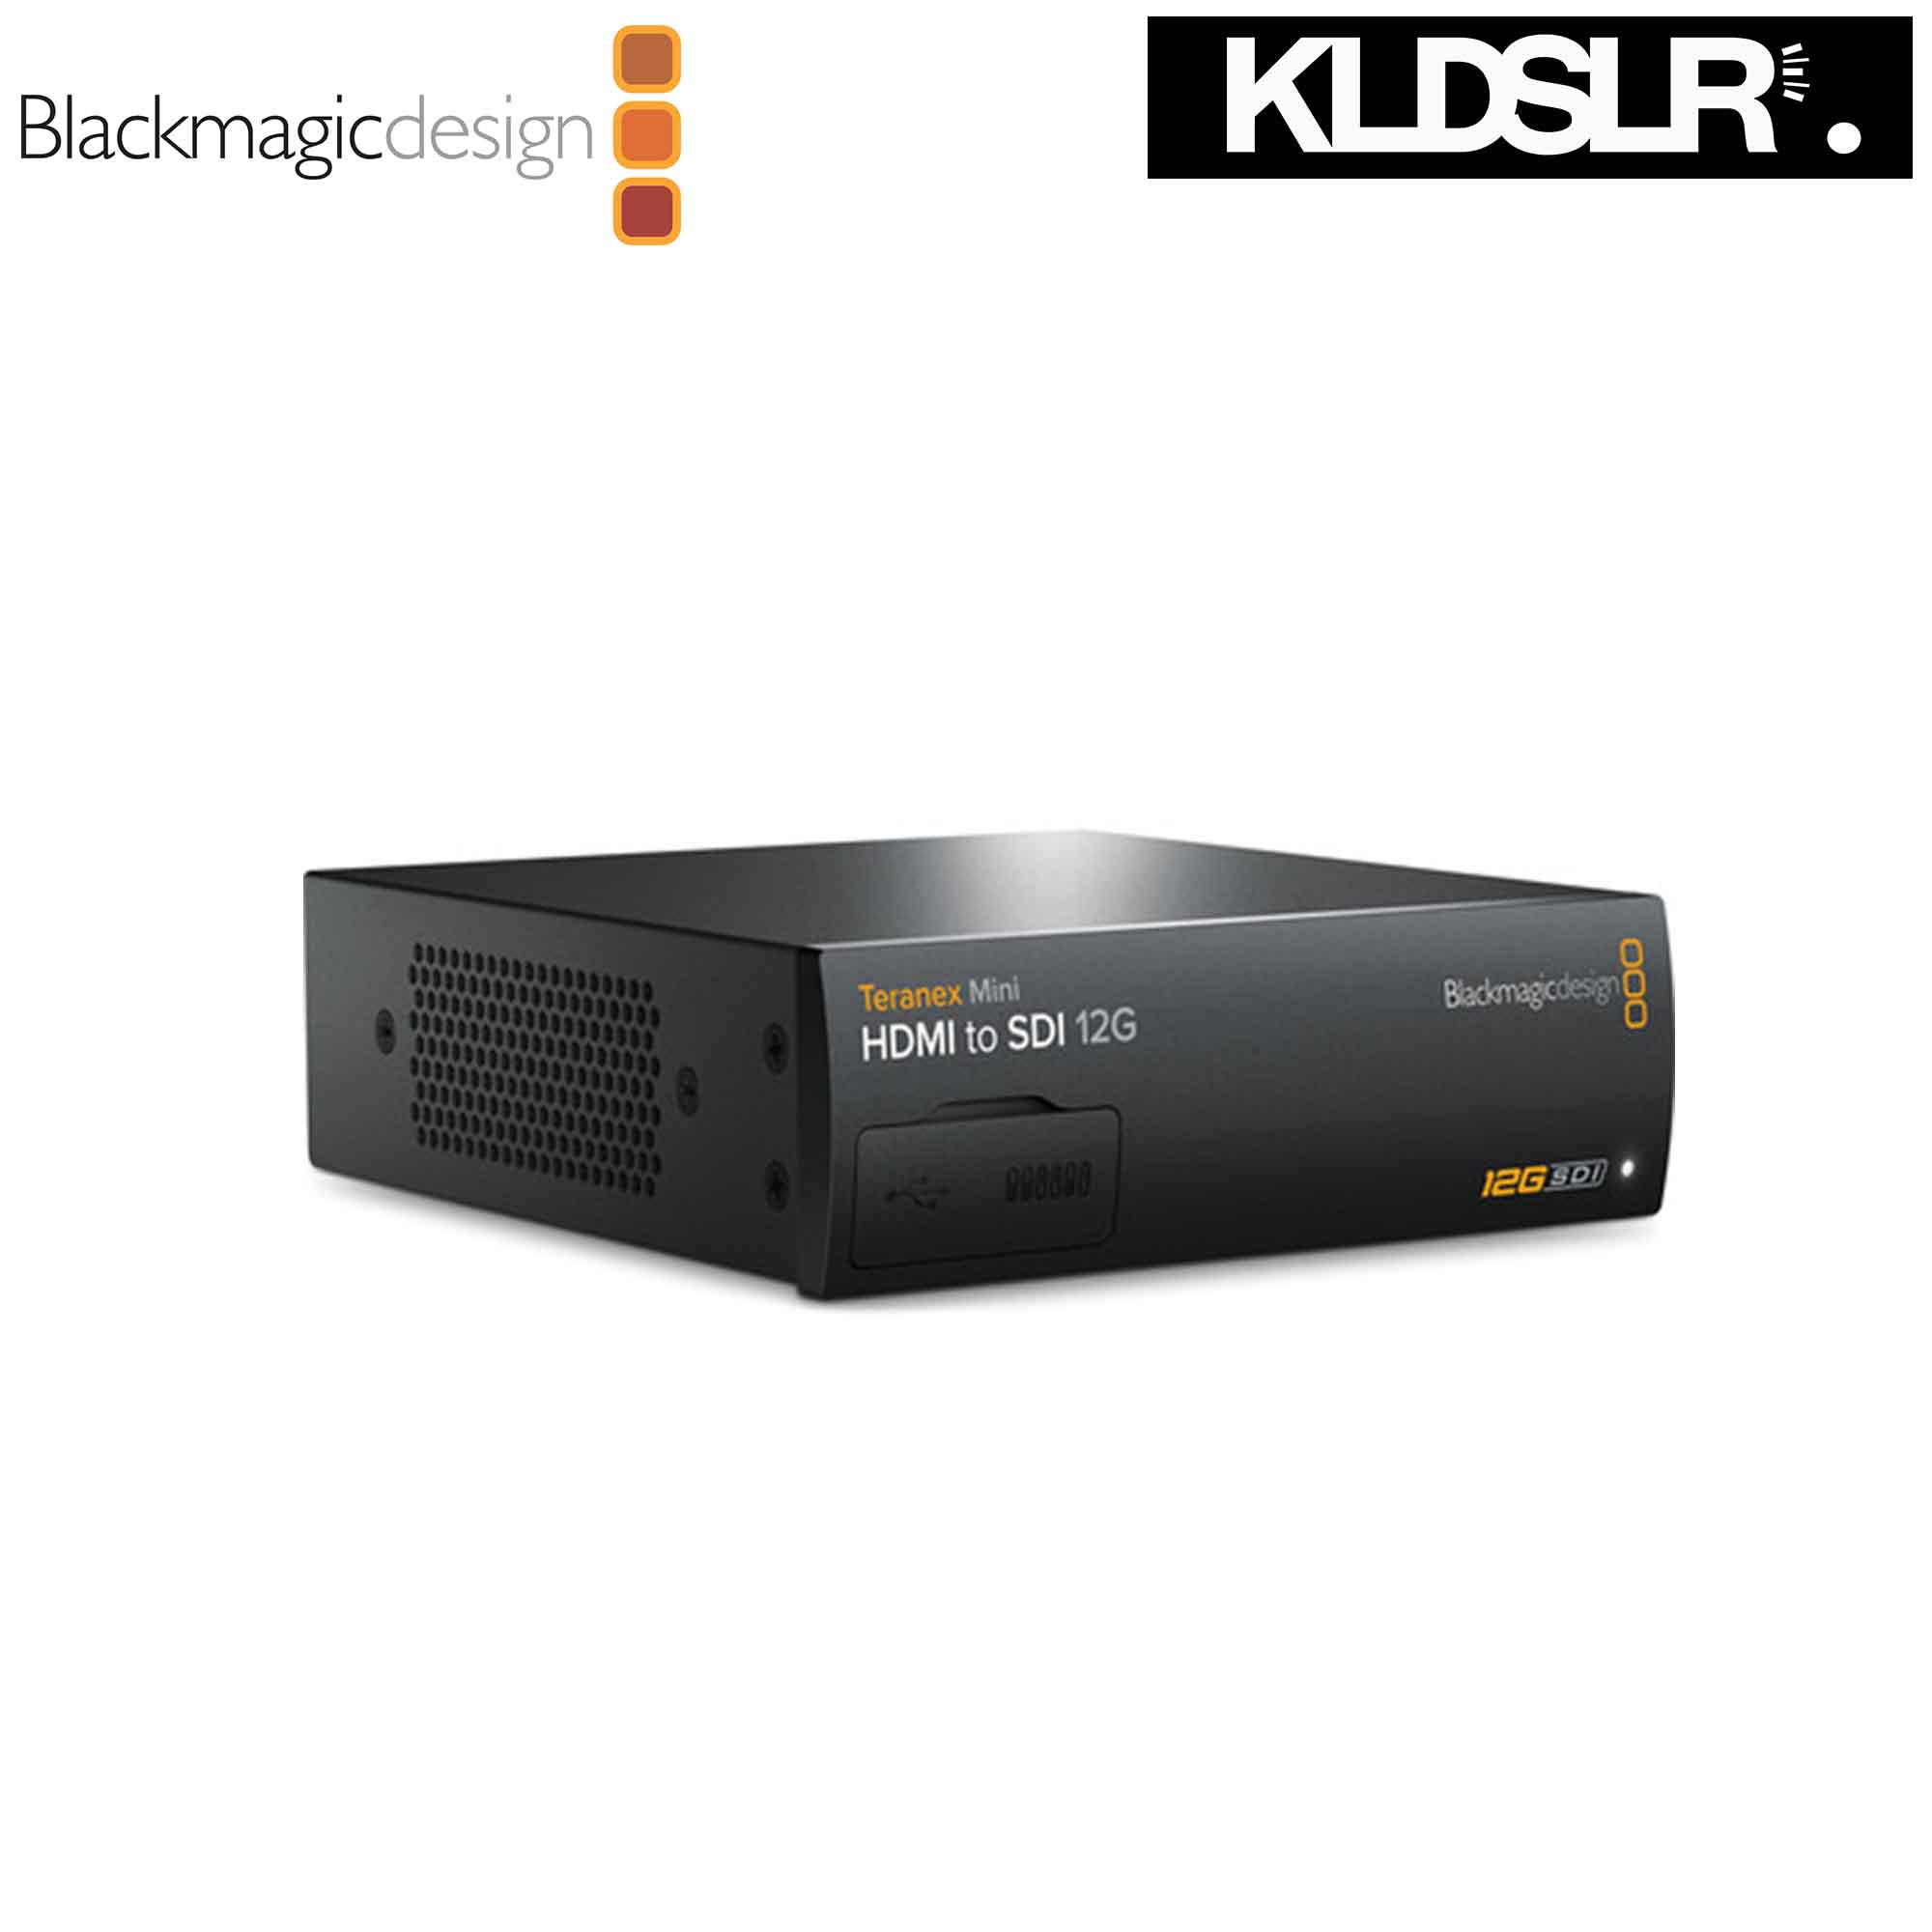 Blackmagic Design Teranex Mini HDMI to SDI 12G Converter (Blackmagic Malaysia)